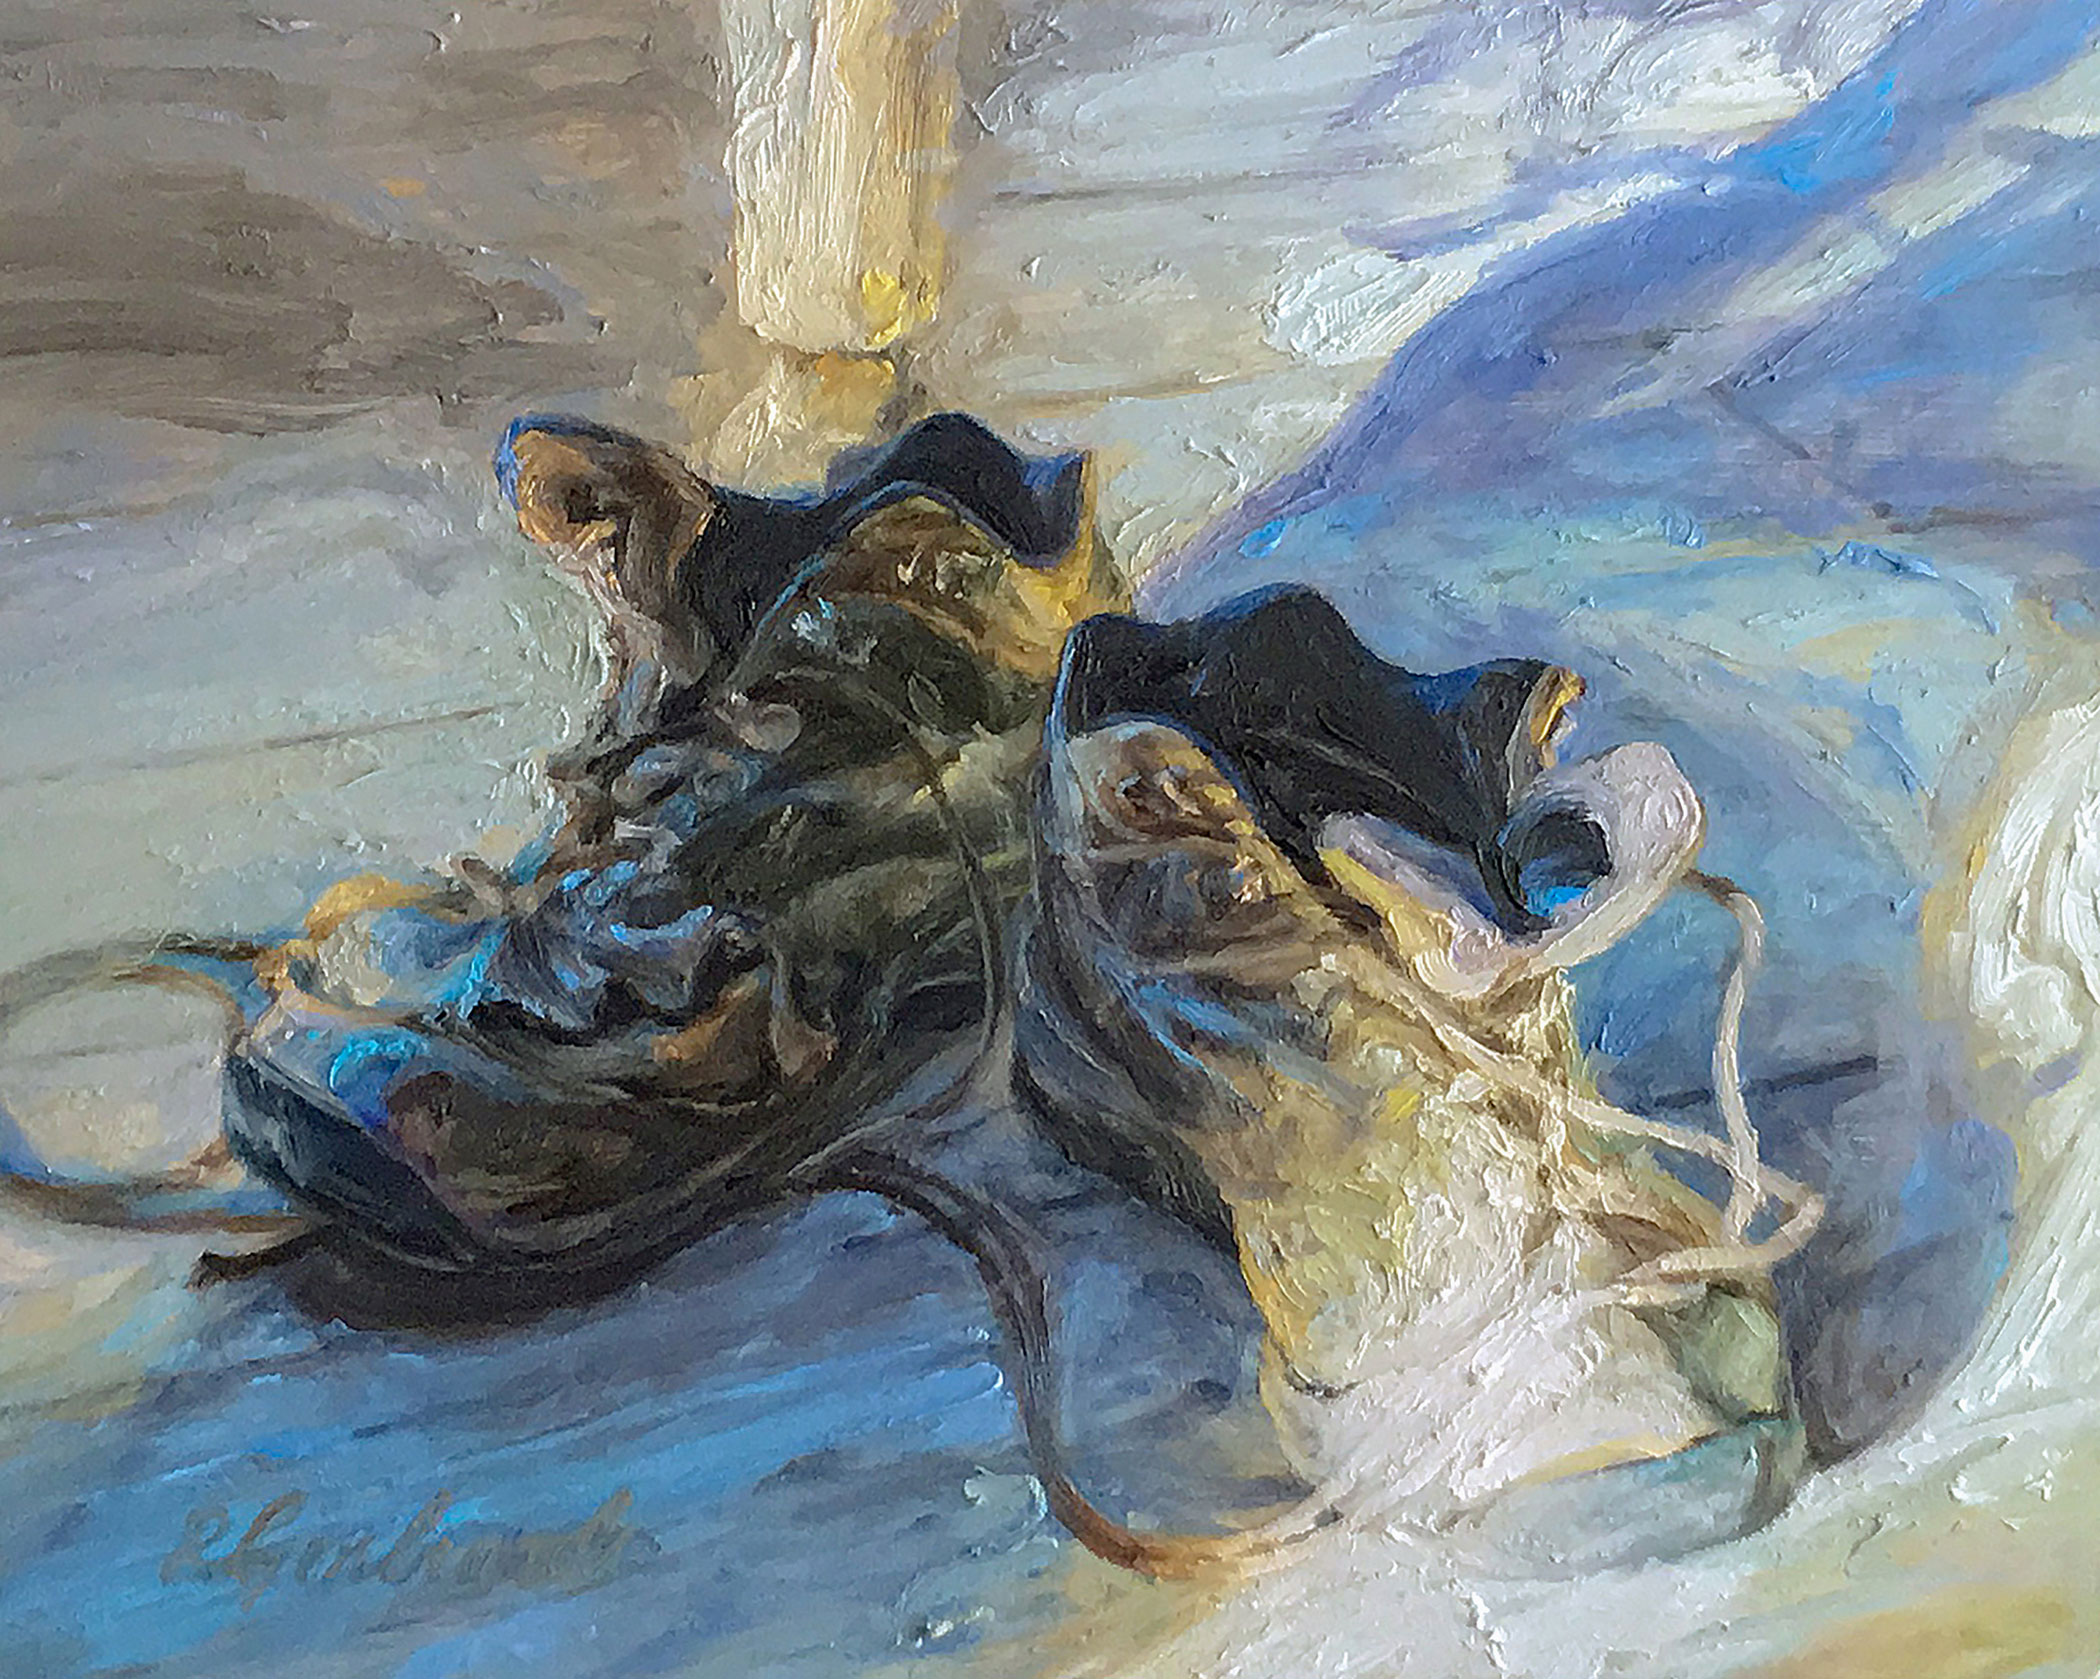 Gerbrandt_Ron__low-res_Work-Boots_Oil_8x10_$910